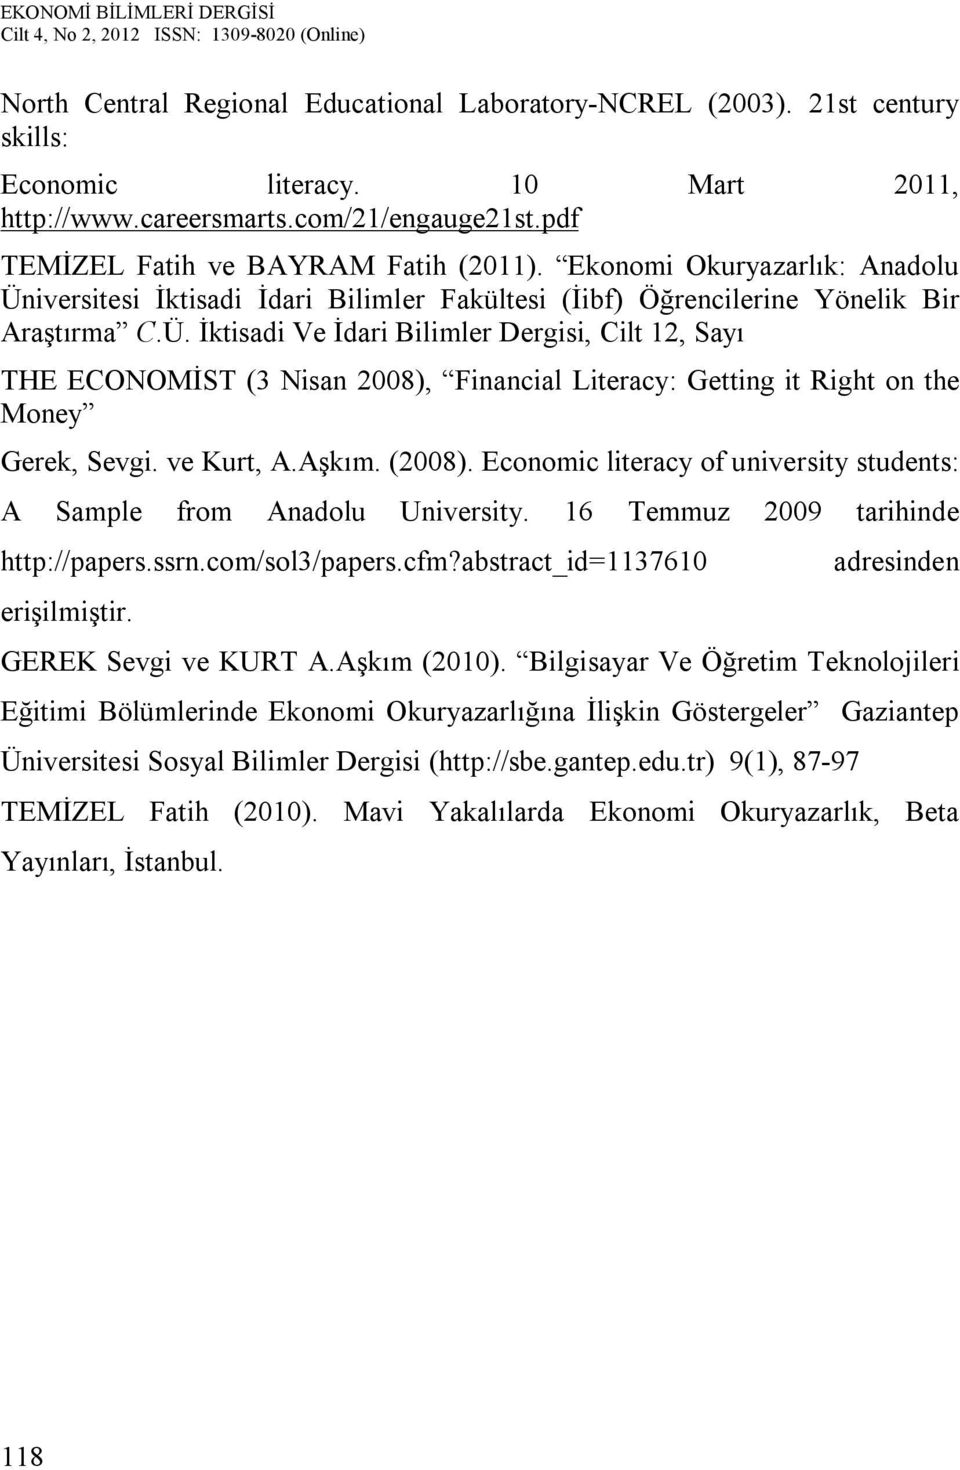 ve Kurt, A.Aşkım. (2008). Economic literacy of university students: A Sample from Anadolu University. 16 Temmuz 2009 tarihinde http://papers.ssrn.com/sol3/papers.cfm?abstract_id=113610 erişilmiştir.